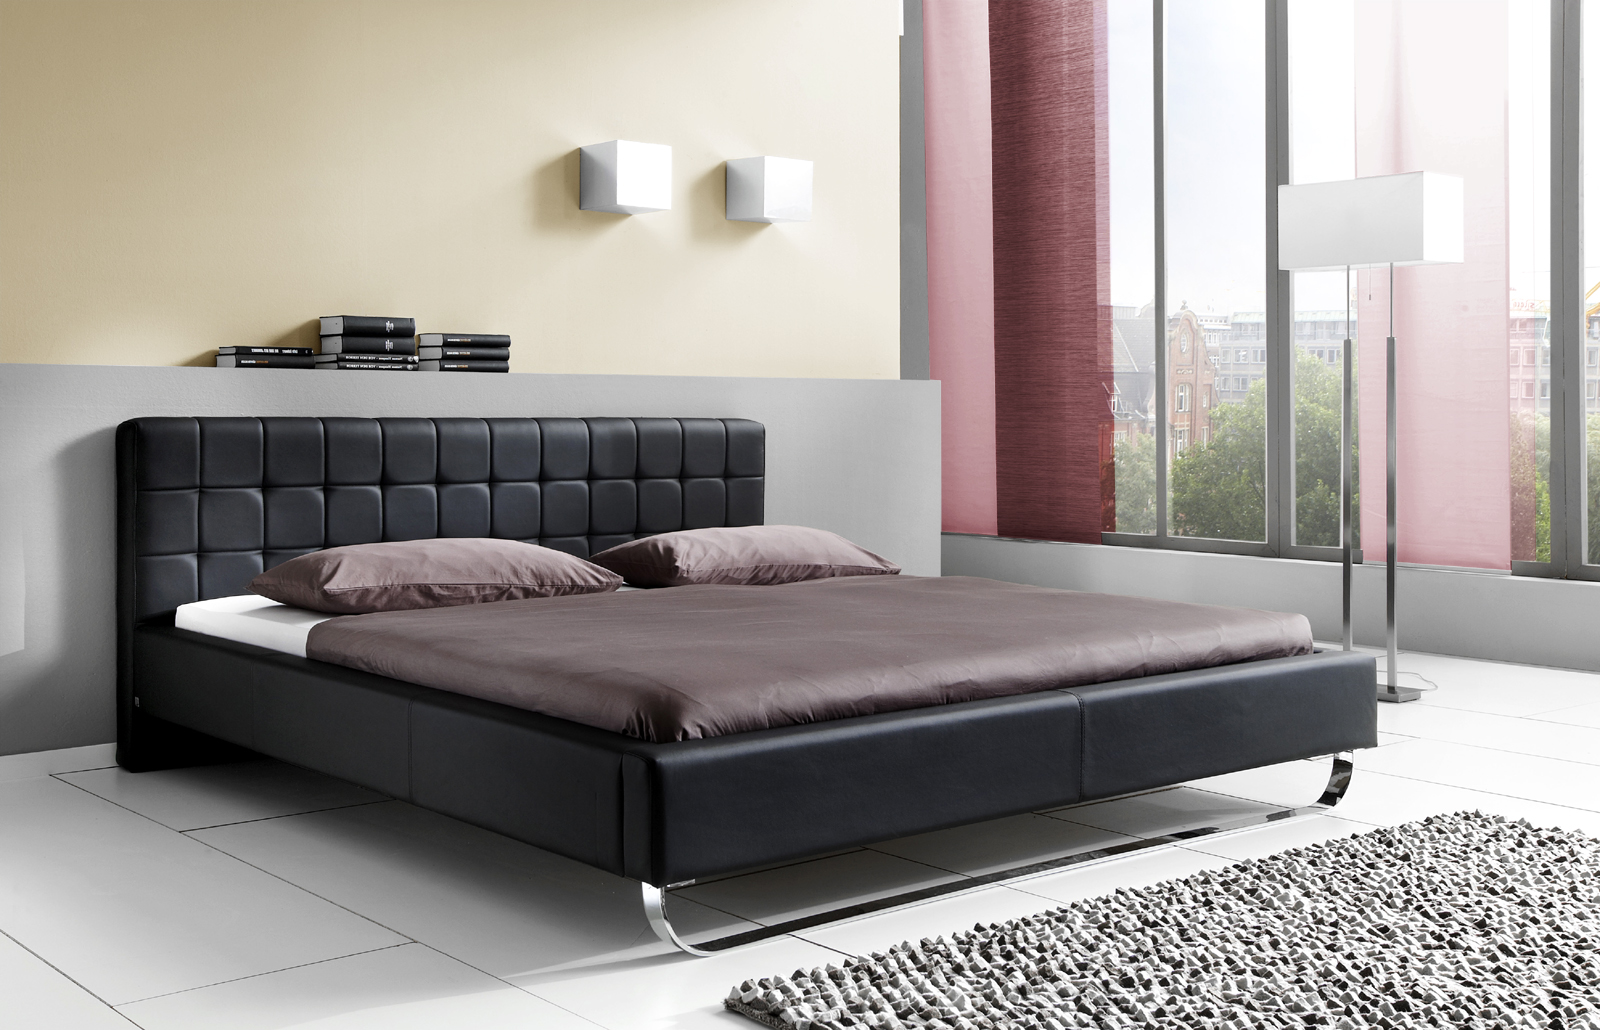 faszinierend bett f r kleine r ume bilder erindzain. Black Bedroom Furniture Sets. Home Design Ideas